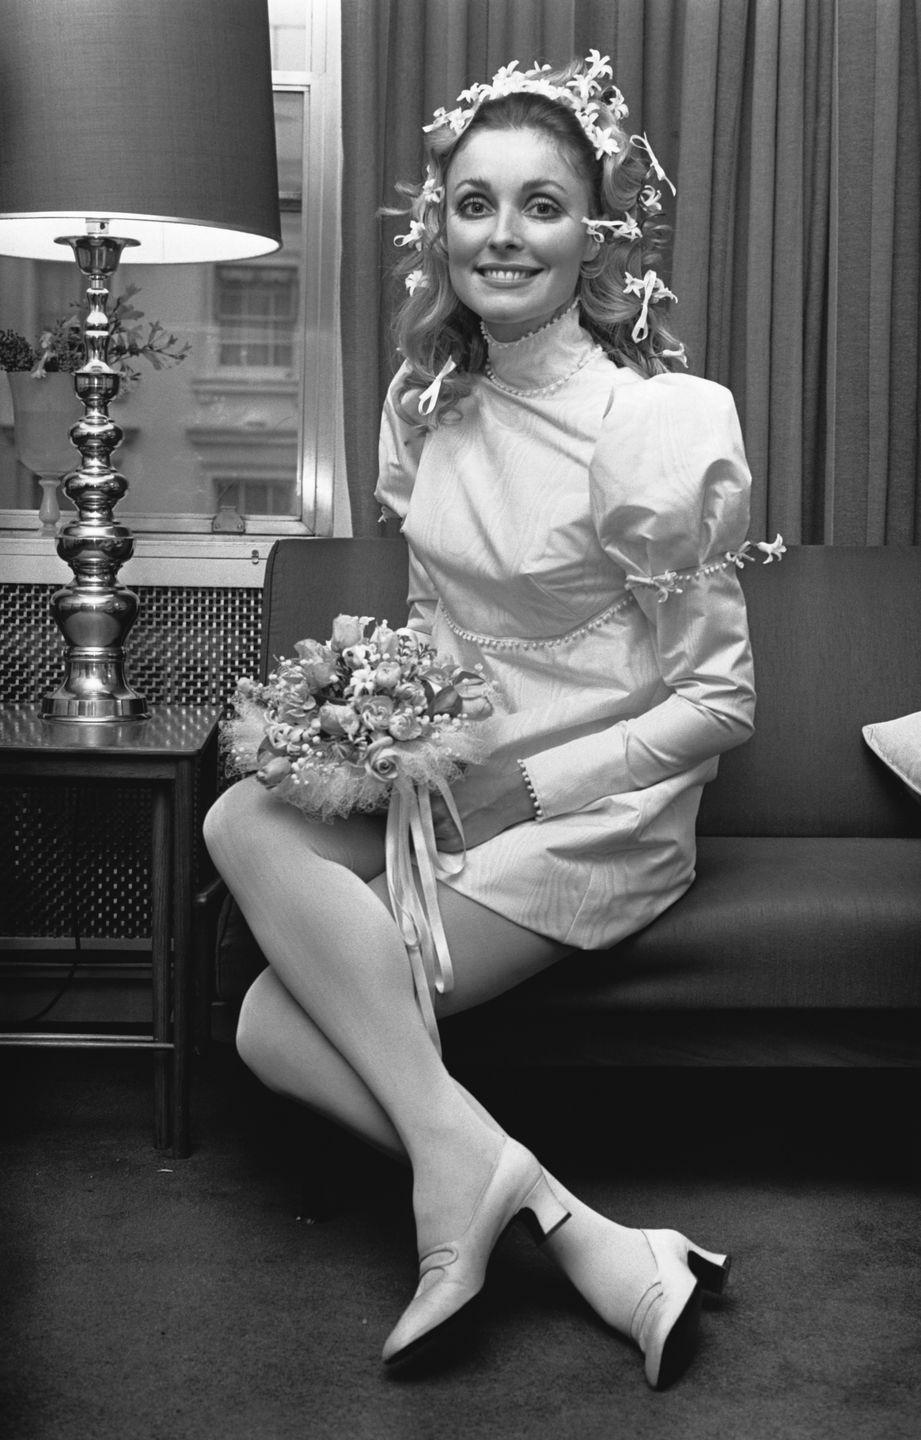 "<p>Tate's wedding look—a long sleeve mini dress and flowers scattered in her hair—instantly became iconic. The dress sold <a href=""https://www.cnn.com/style/article/sharon-tate-wedding-dress-scli-intl/index.html"" rel=""nofollow noopener"" target=""_blank"" data-ylk=""slk:at an auction last year"" class=""link rapid-noclick-resp"">at an auction last year</a> for $56,000 to an anonymous buyer. </p>"